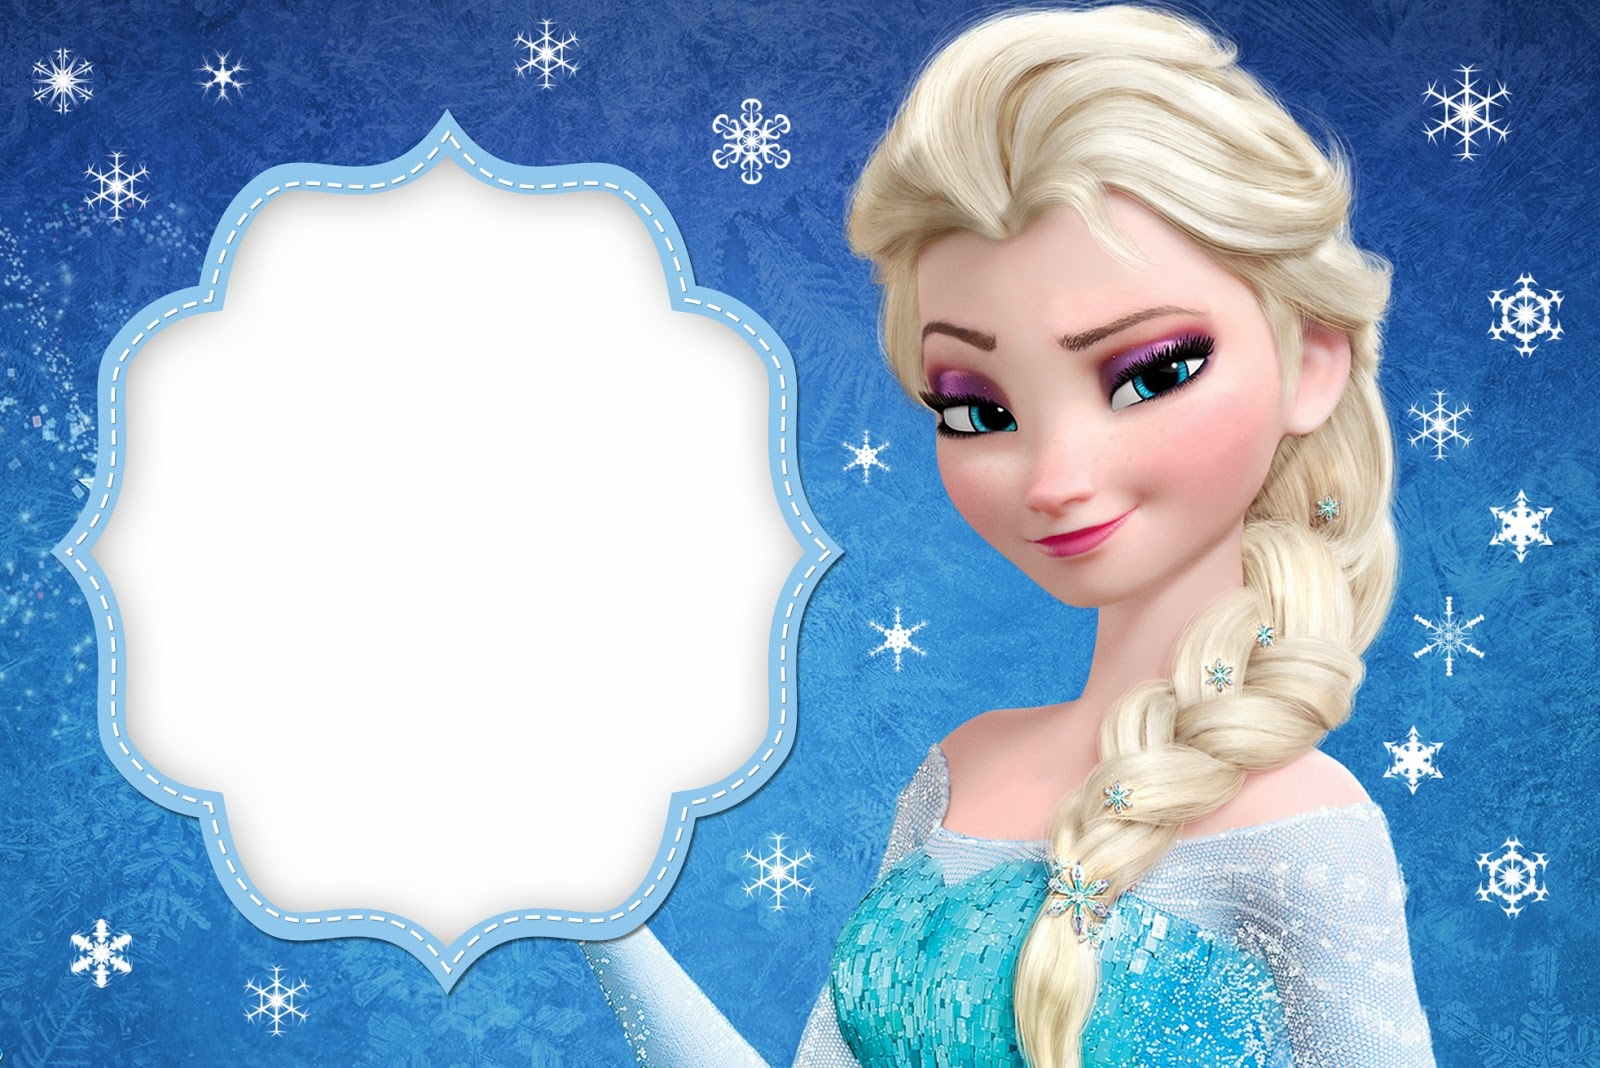 Frozen: Free Printable Cards Or Party Invitations. - Oh My Fiesta - Free Printable Frozen Birthday Cards